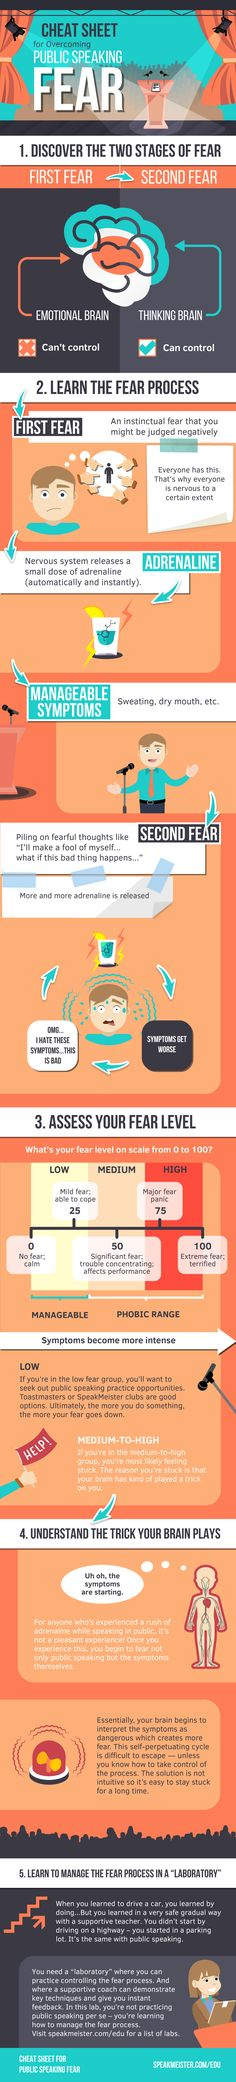 How to Overcome Public Speaking Fear Infographic - http://elearninginfographics.com/how-to-overcome-public-speaking-fear-infographic/